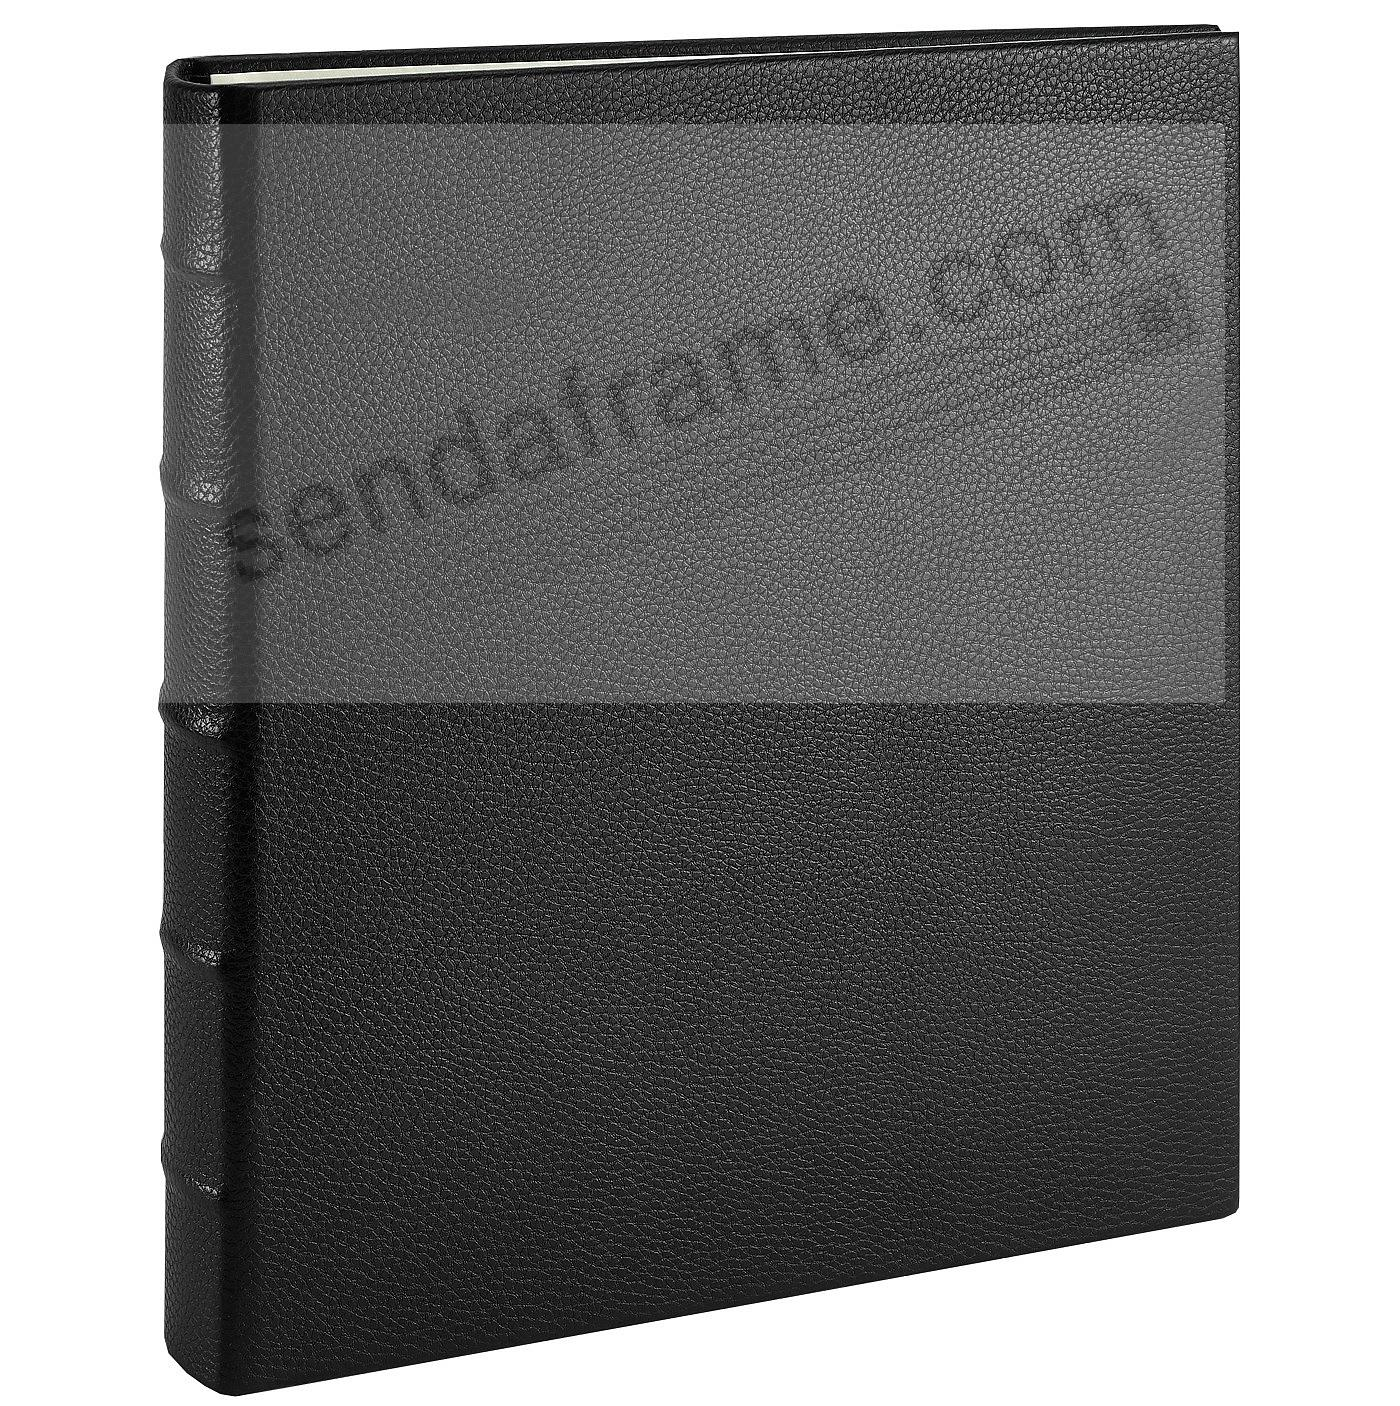 Post Impressions™ System standard 3-ring Black Pebble-Grain Eco-Leather binder (unfilled)